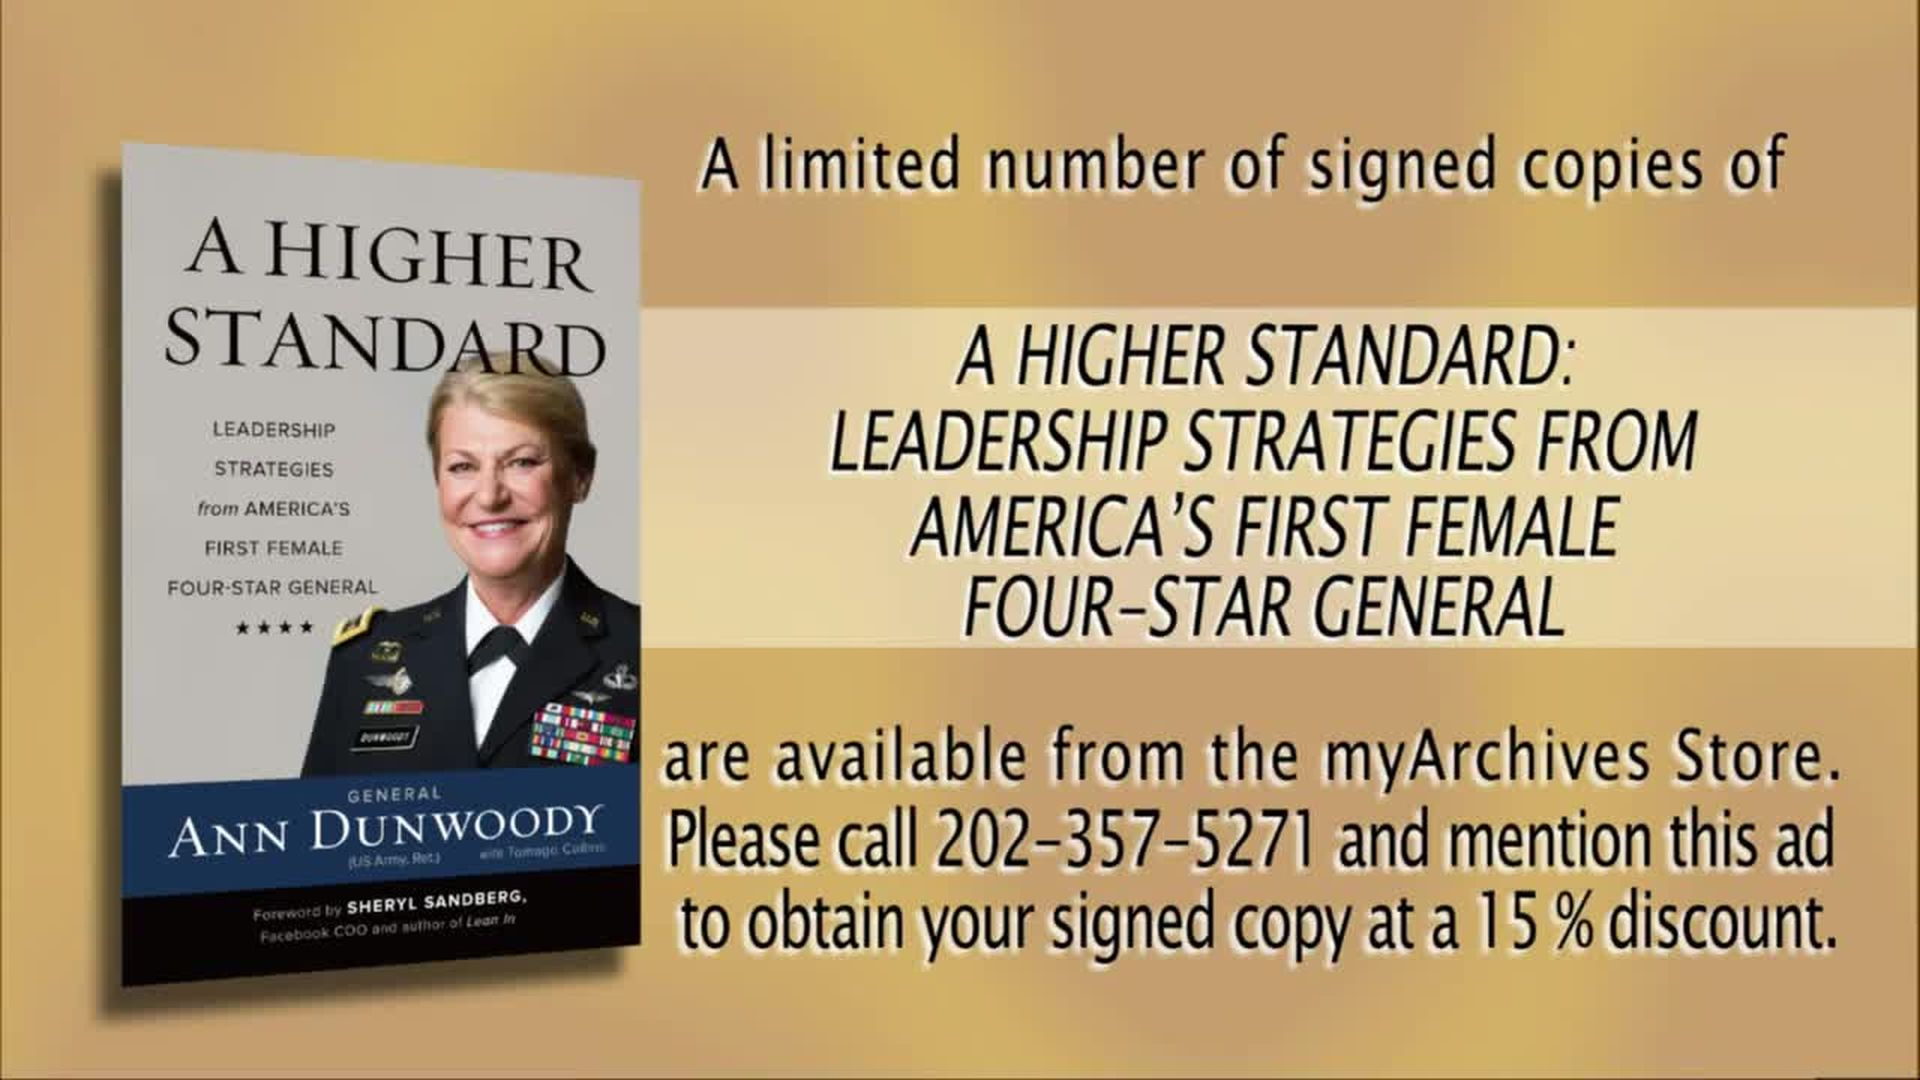 A Higher Standard to Leadership